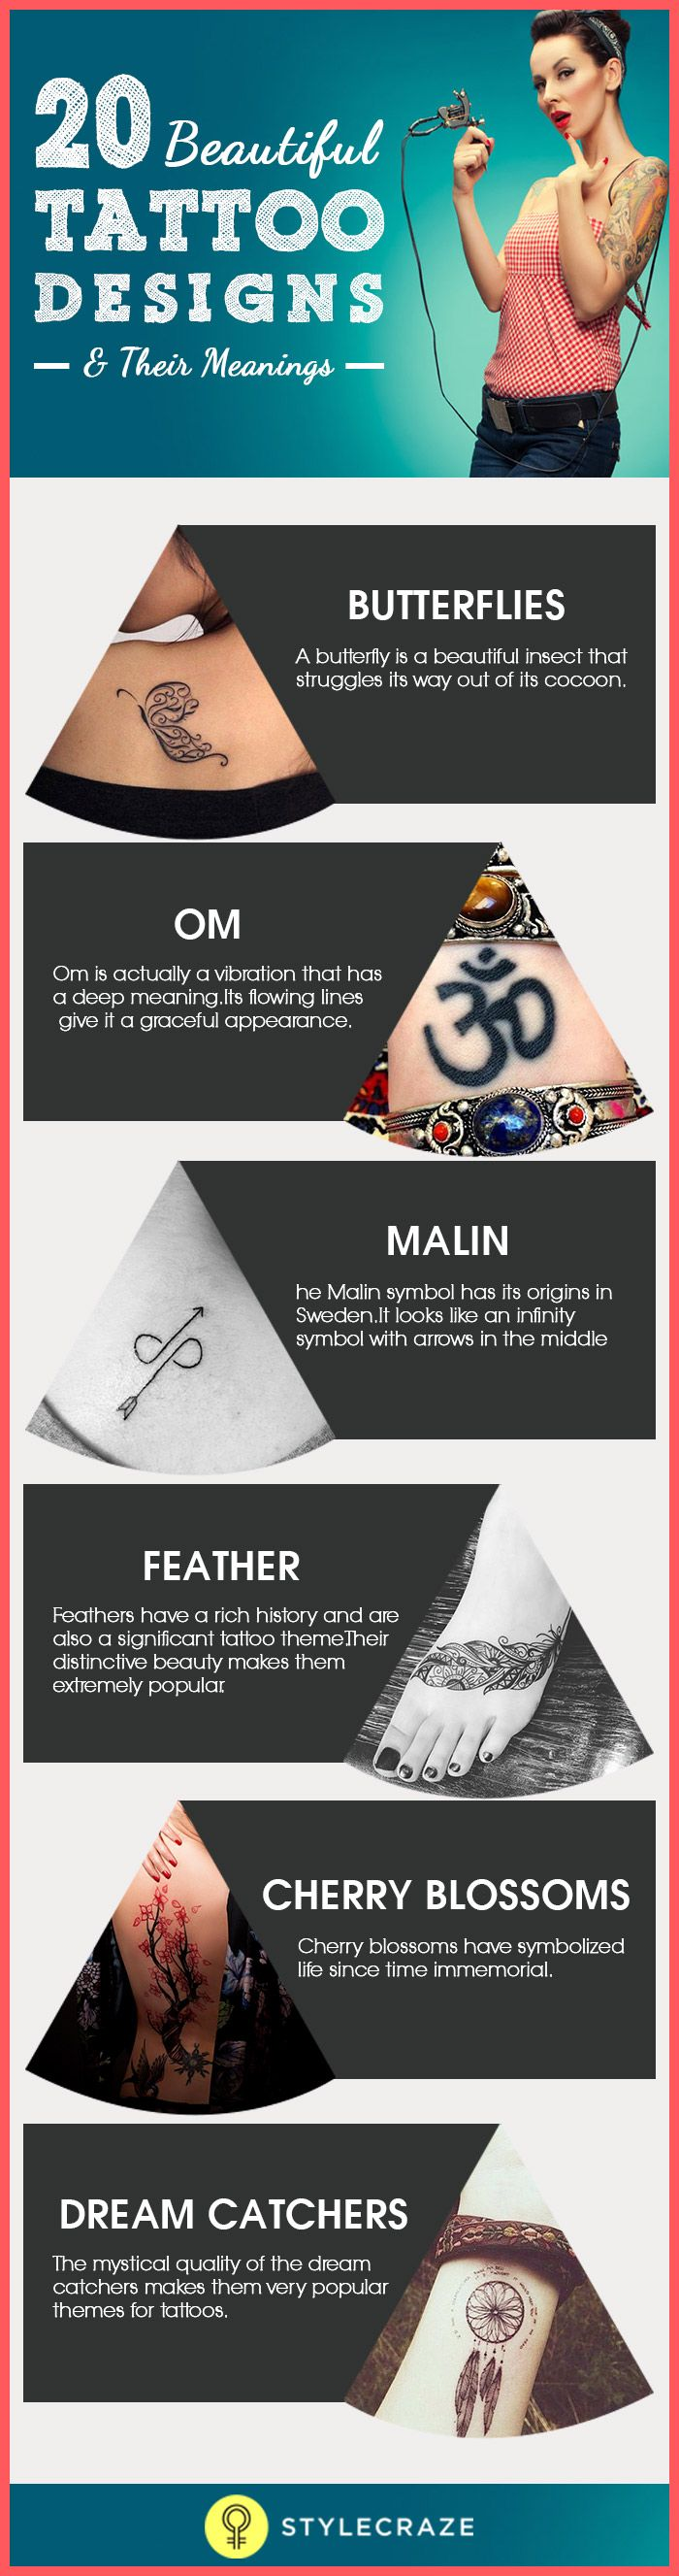 Tattoos are extremely personal, and while they might seem modern, cool, and trendy, they mean much more than a shape or symbol. Here's an in-depth analysis of 20 beautiful tattoos with meanings that might inspire you to get one (if you don't have one already!).